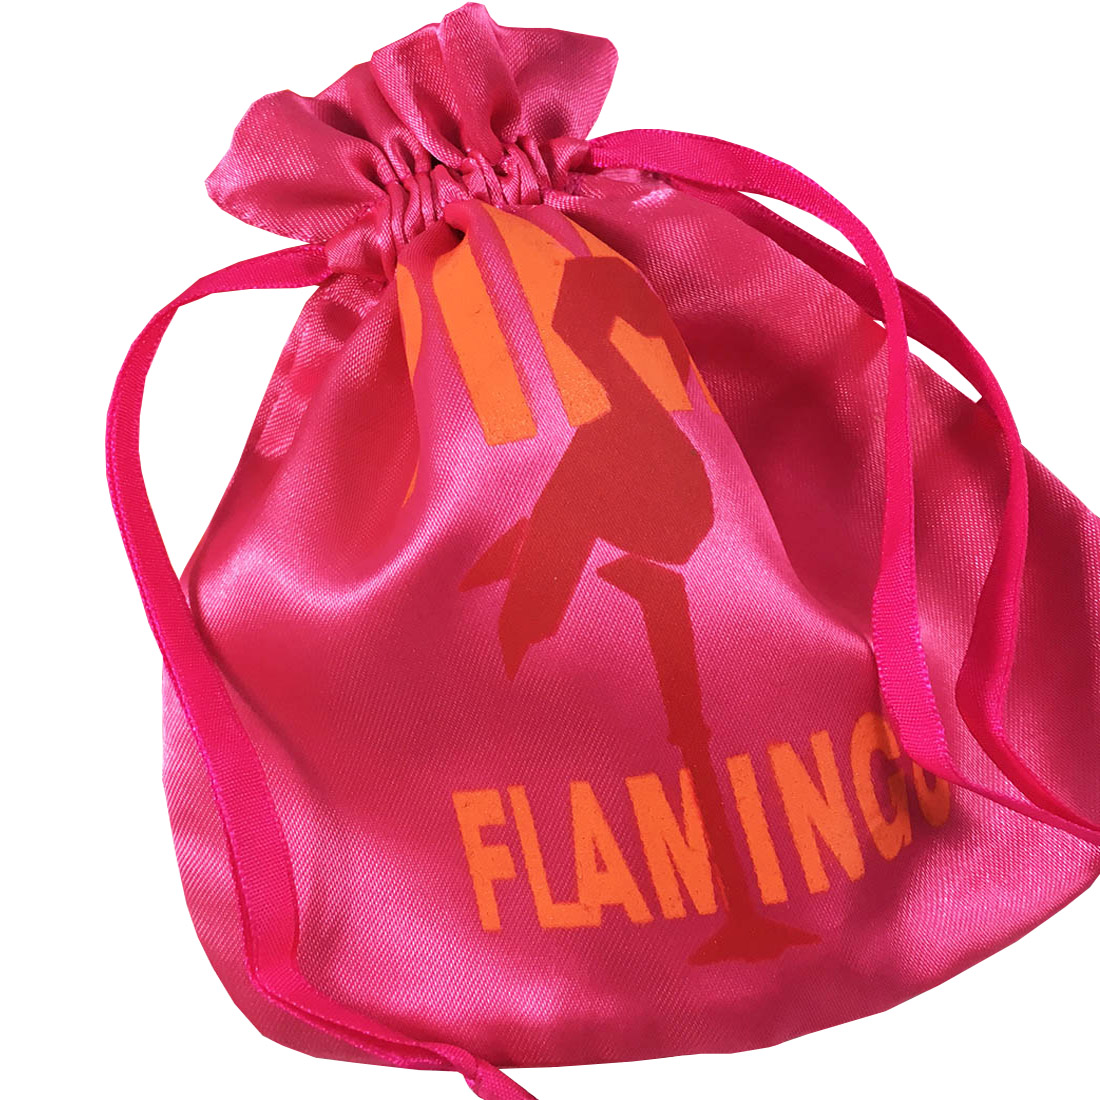 ffec5d88b3ece Printed Satin Drawstring Bag In Deep Pink Woven Polyester Satin With ...